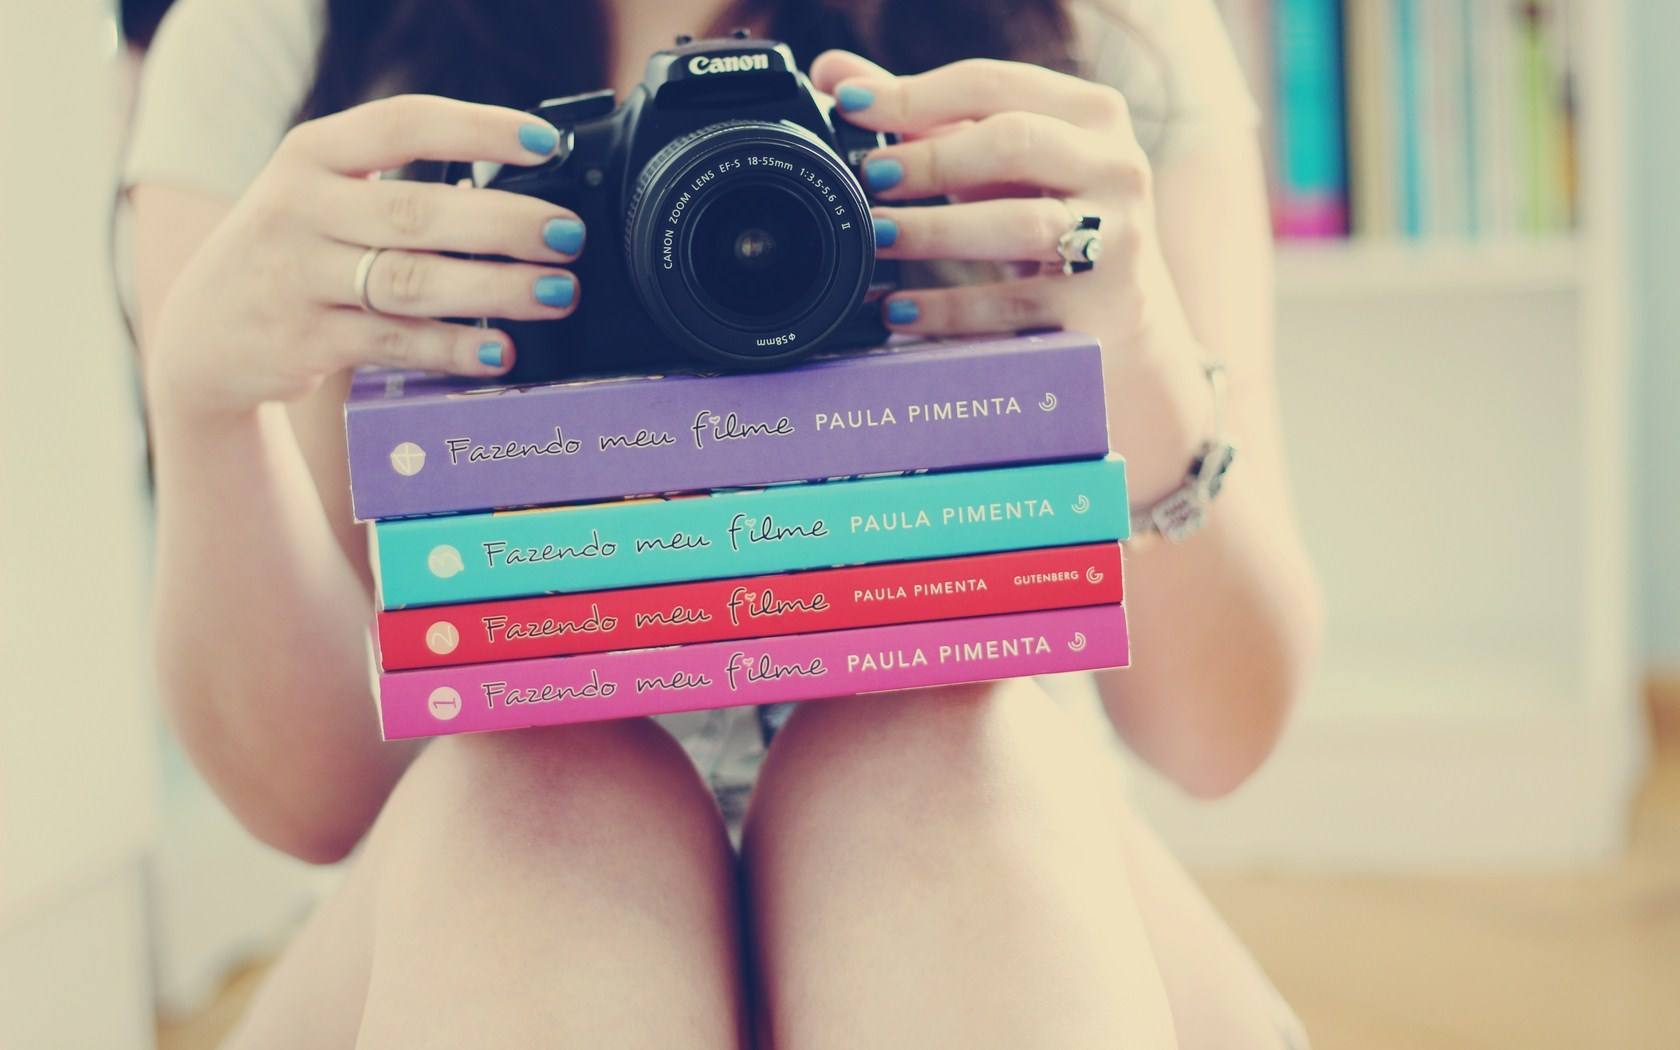 Mood Girl Books Camera Photo